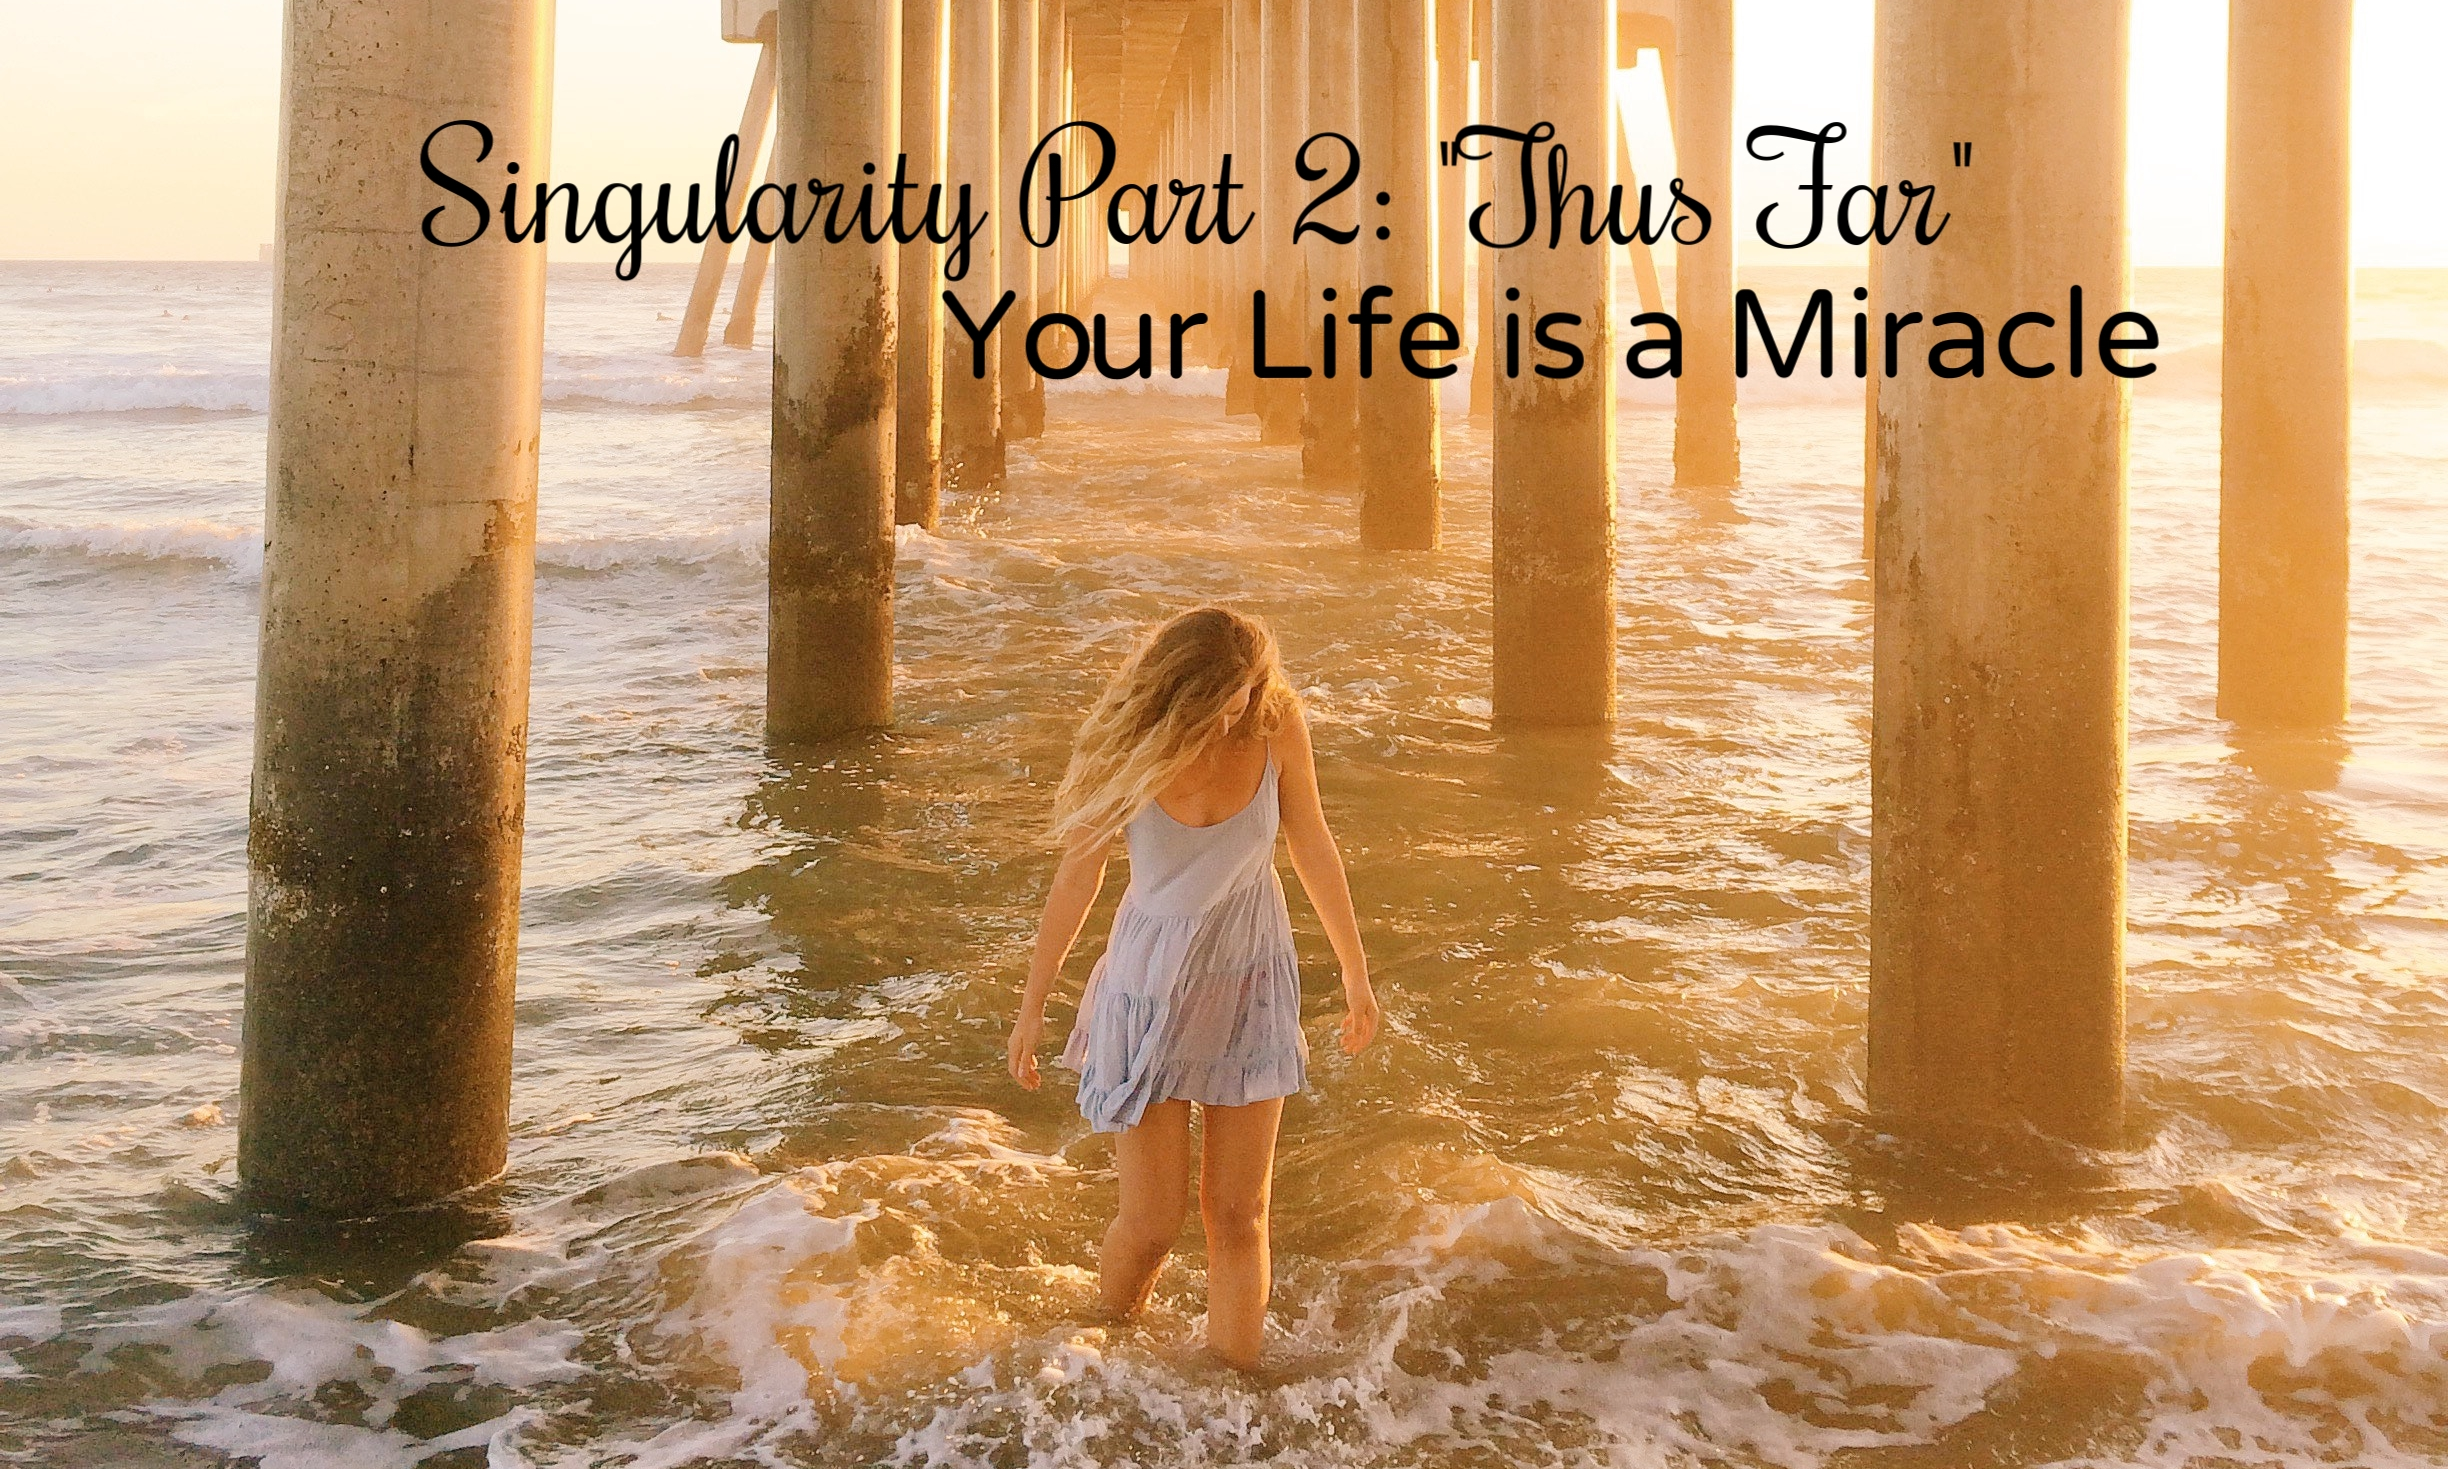 thus far your life is a miracle